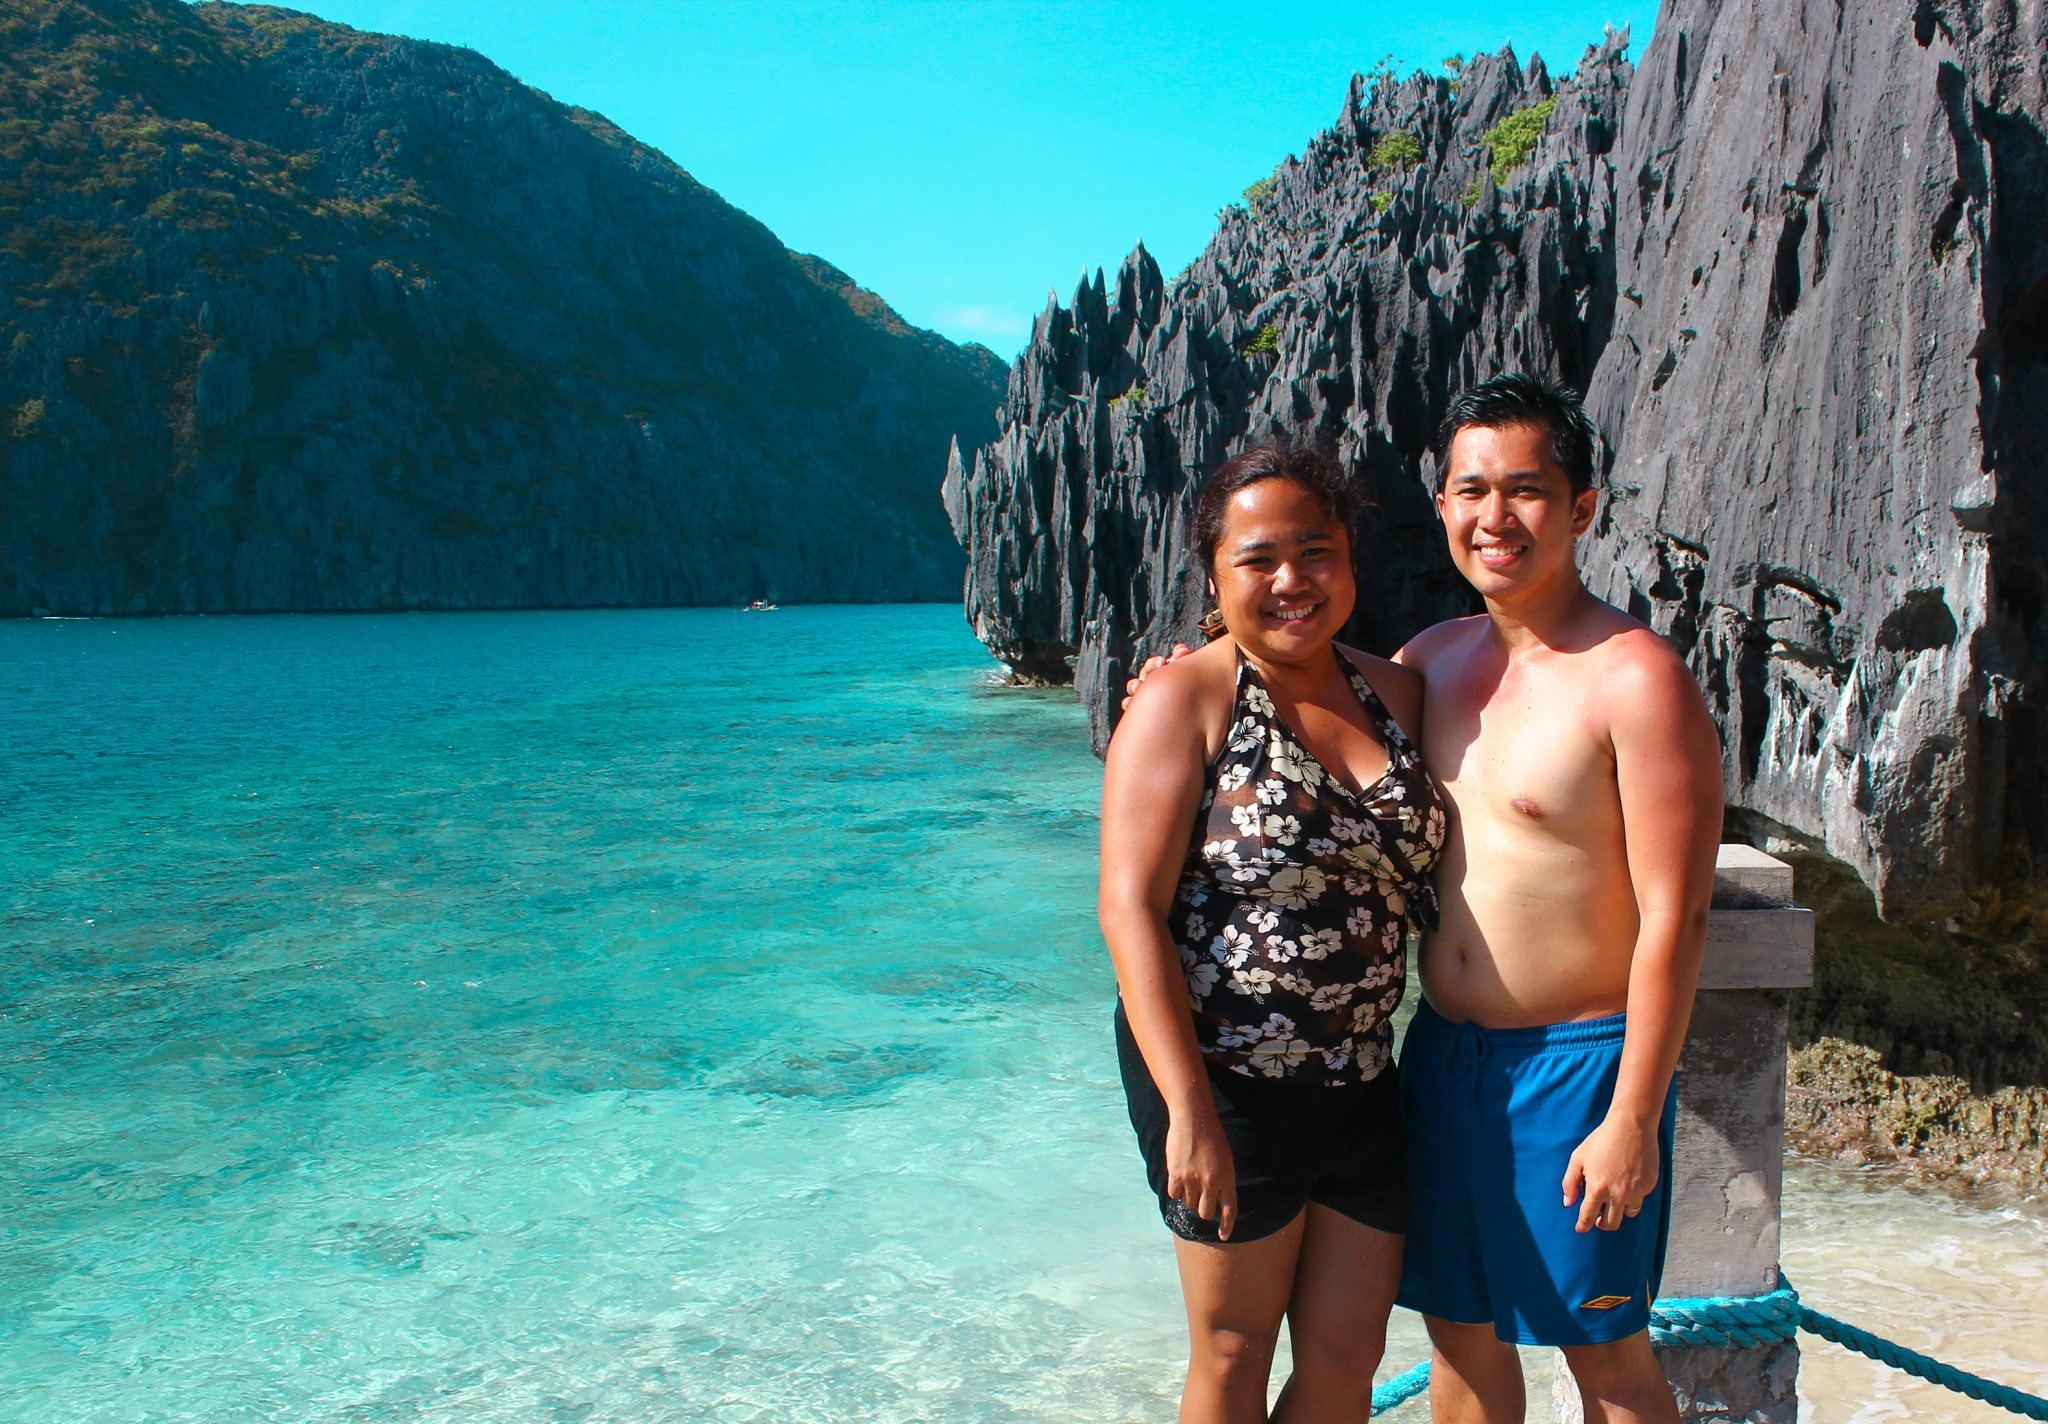 In one of Philippines' finest, El Nido